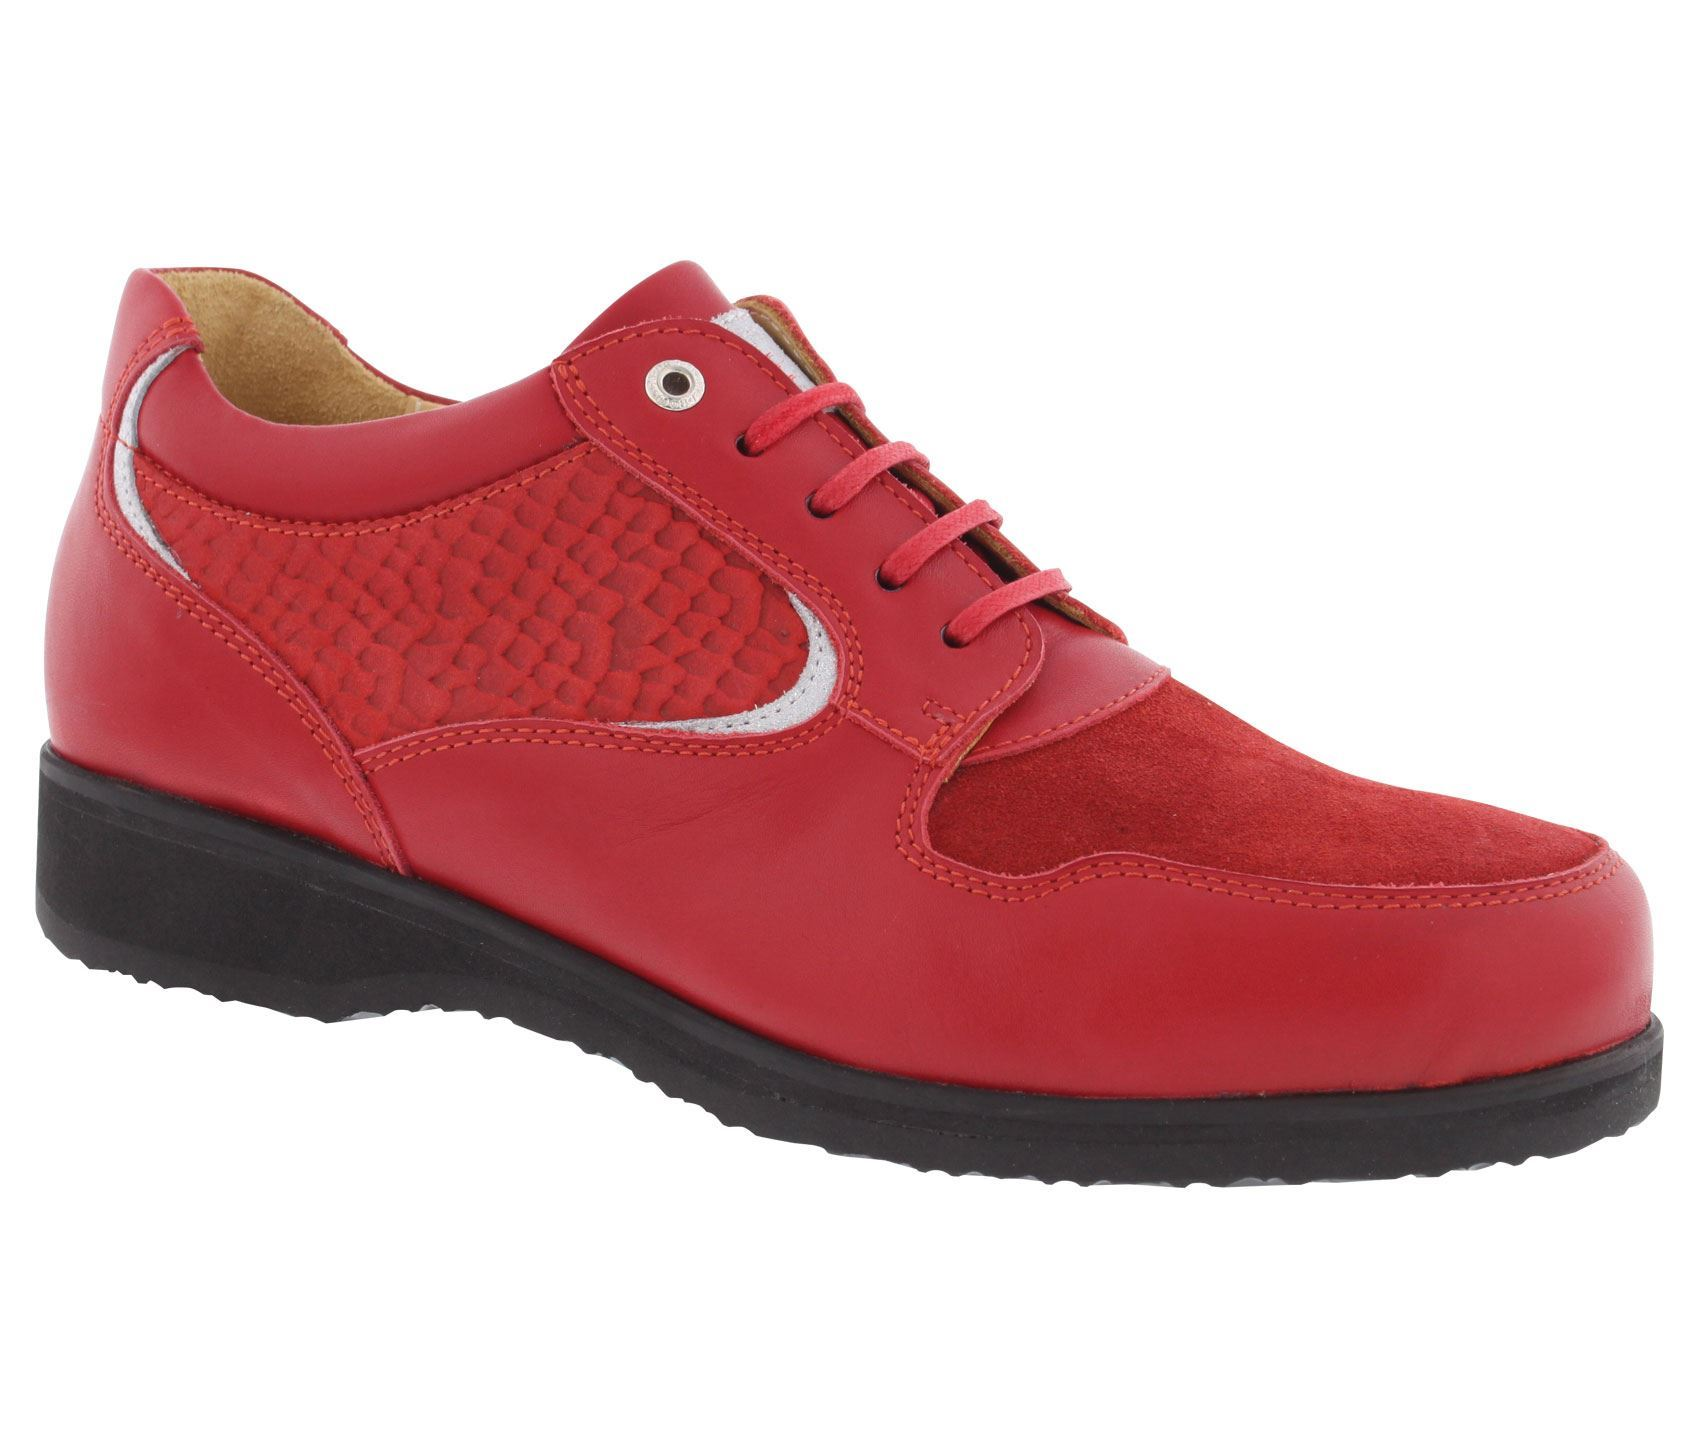 Foot Therapy Shoes Uk